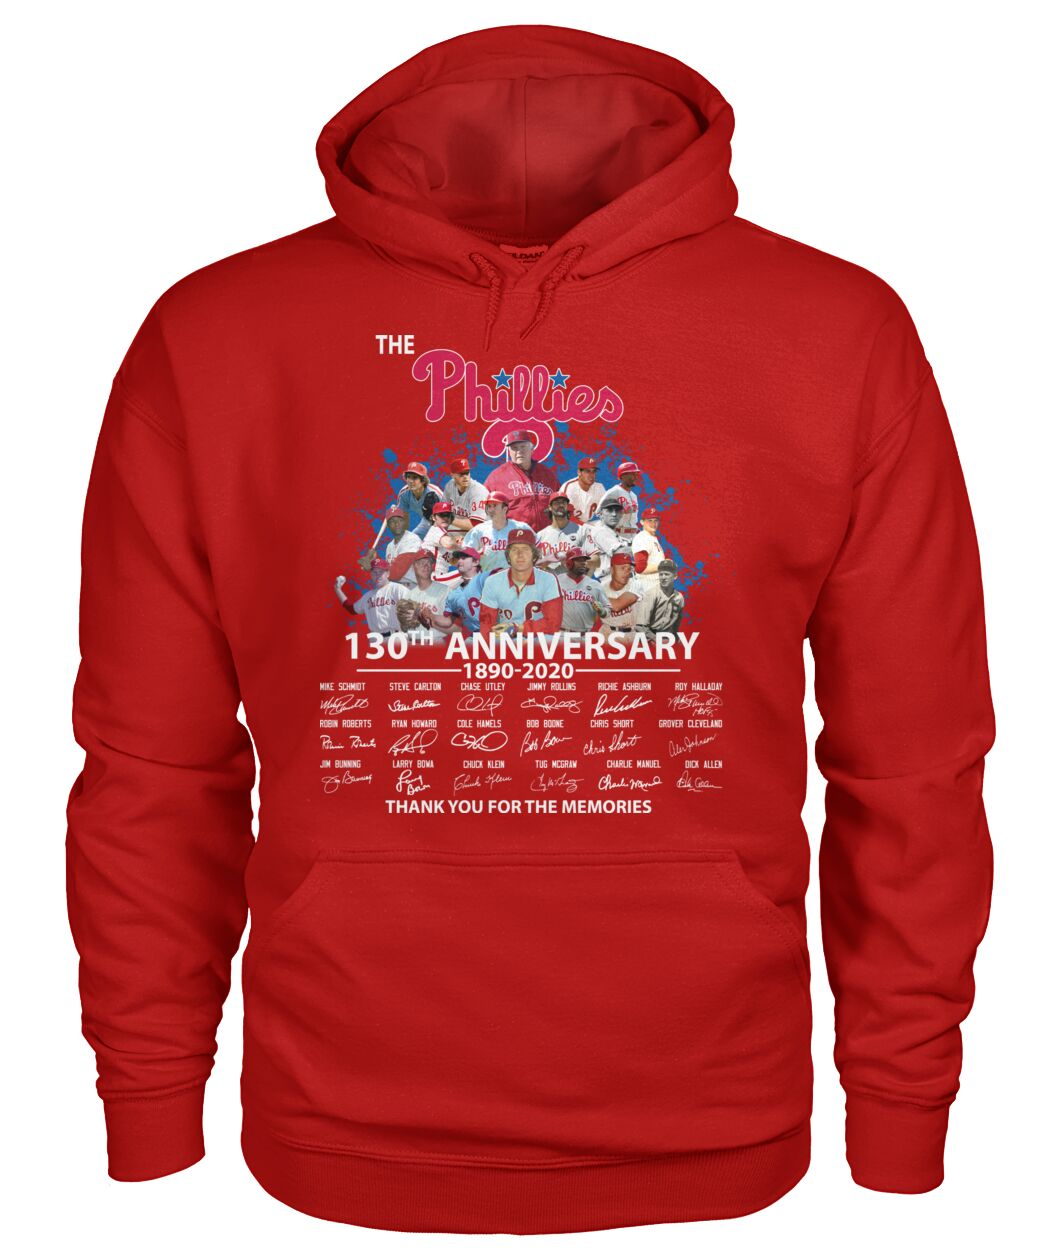 The Phillies 130th Anniversary Thank You For The Memories